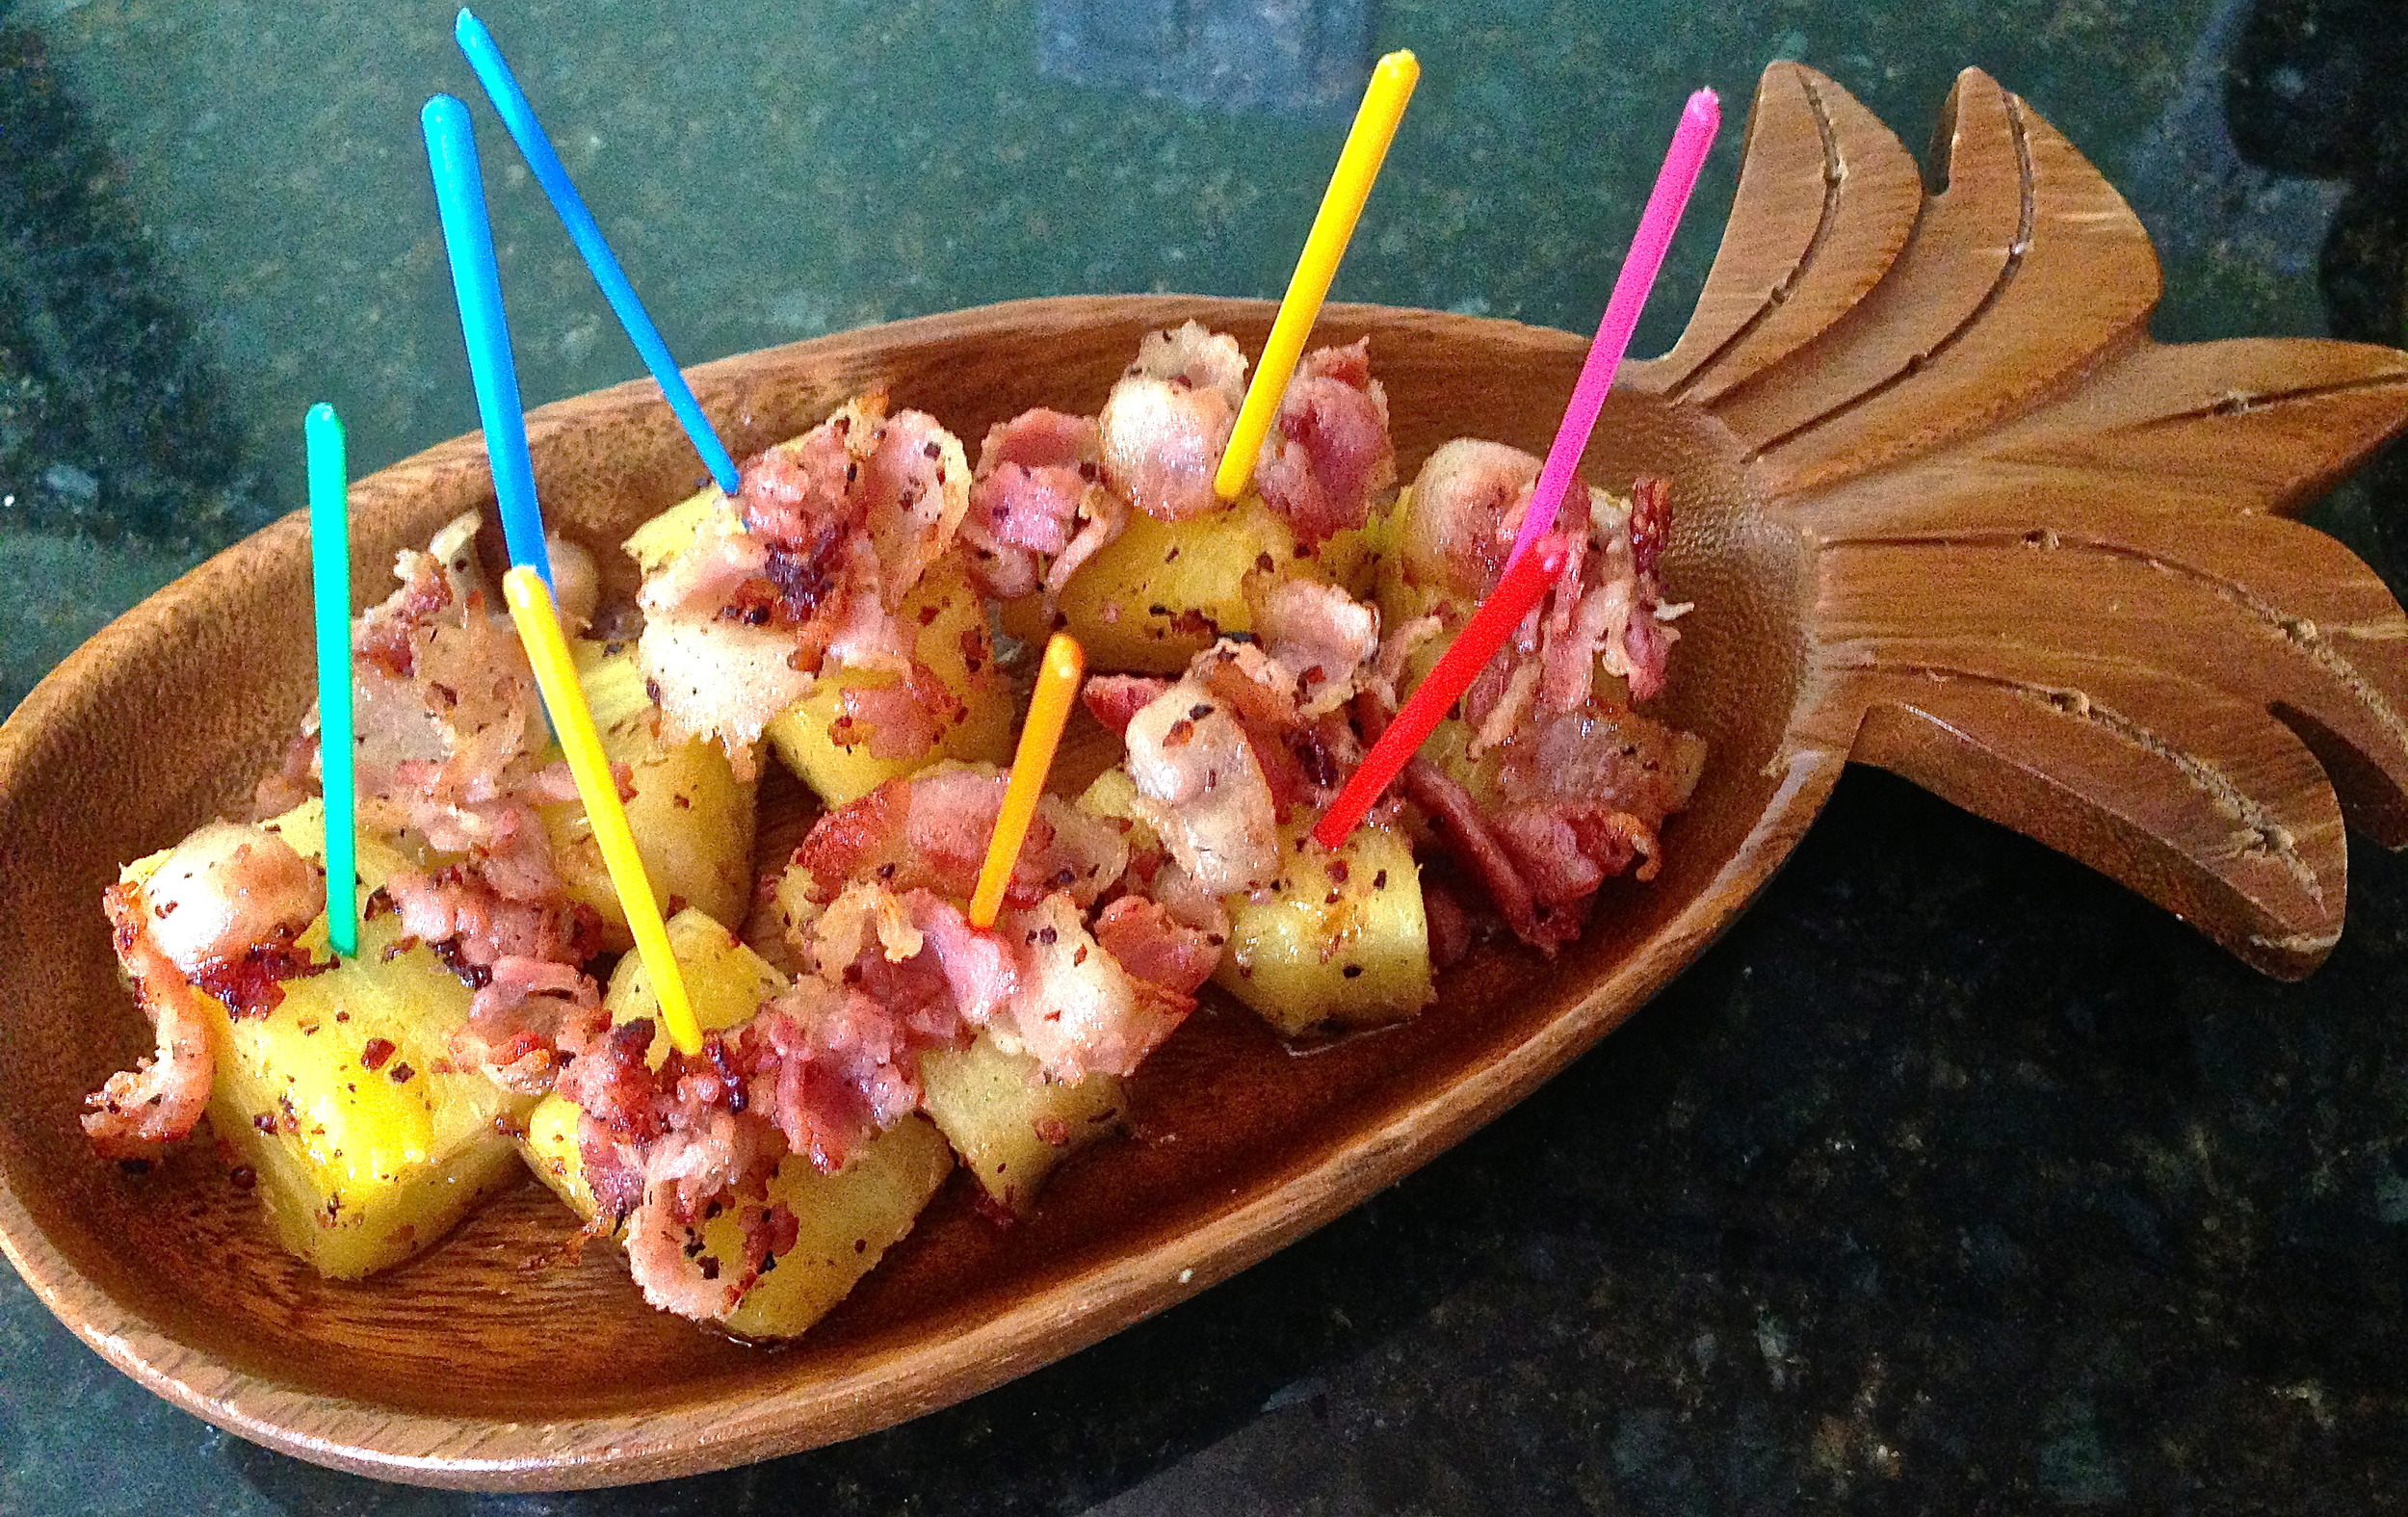 Place pineapple on platter, top with bacon, poke with a fancy pick.